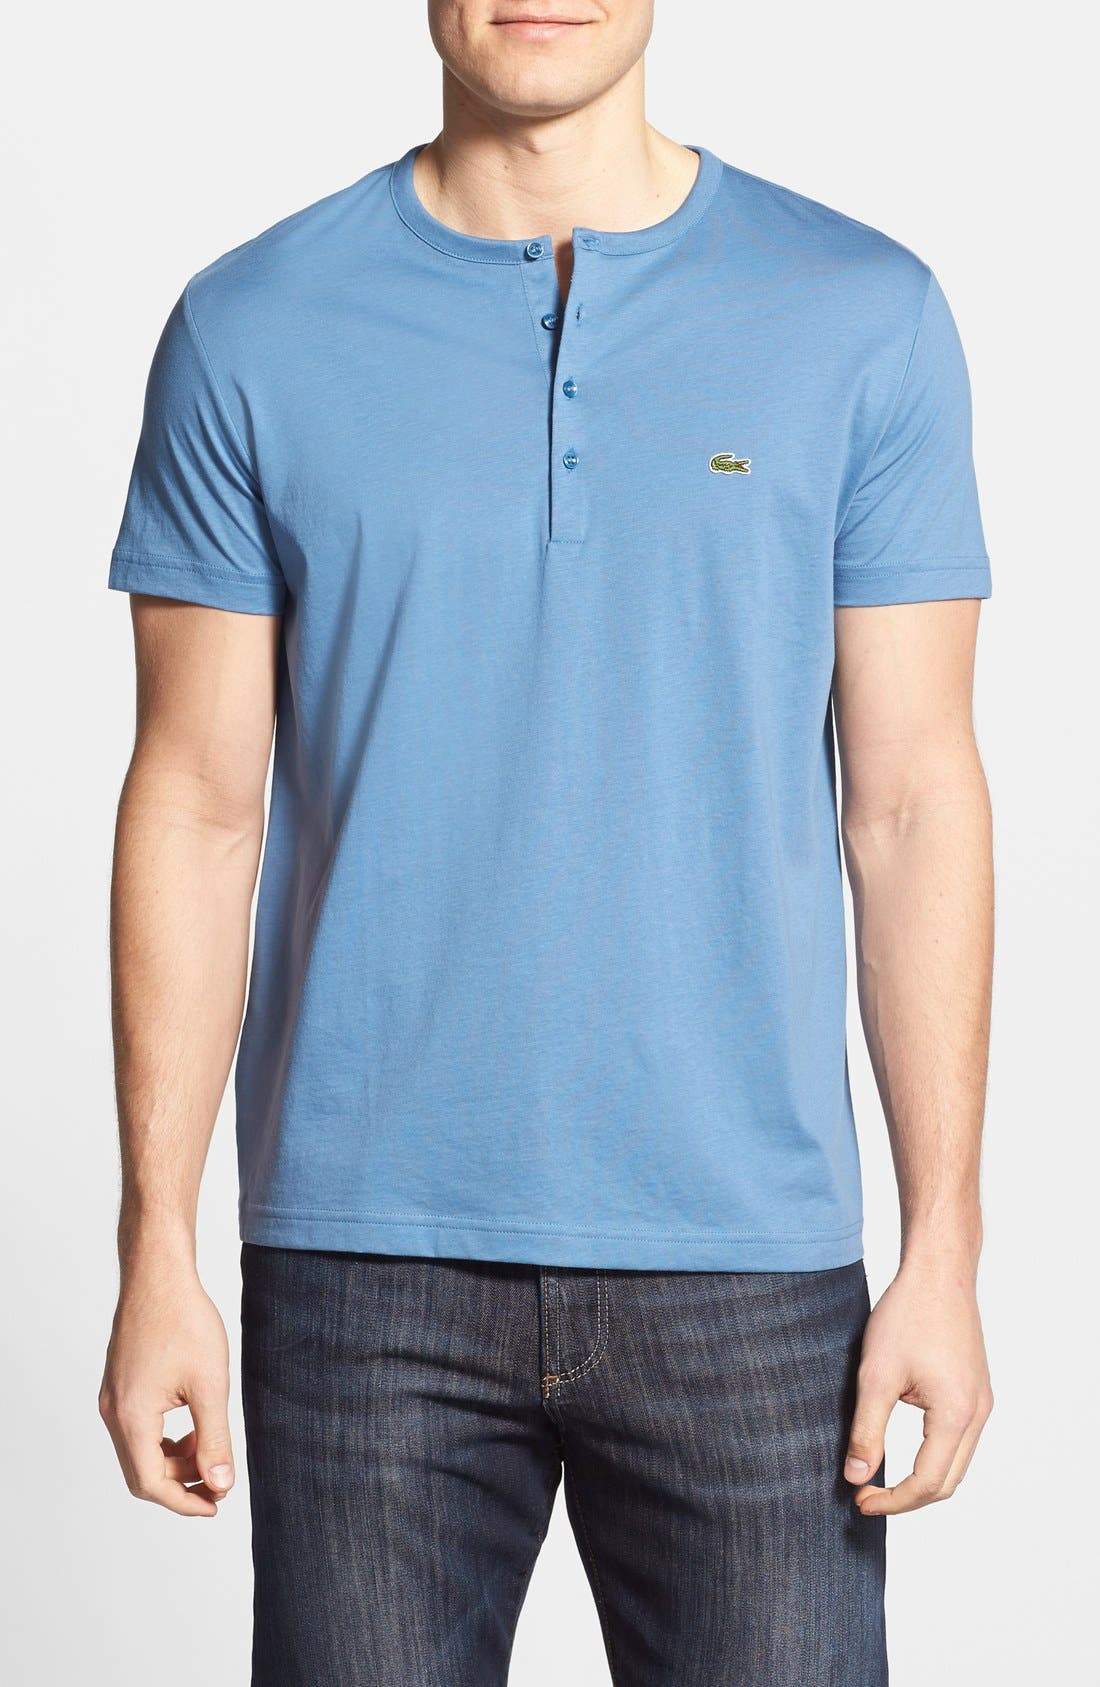 Alternate Image 1 Selected - Lacoste Short Sleeve Henley T-Shirt